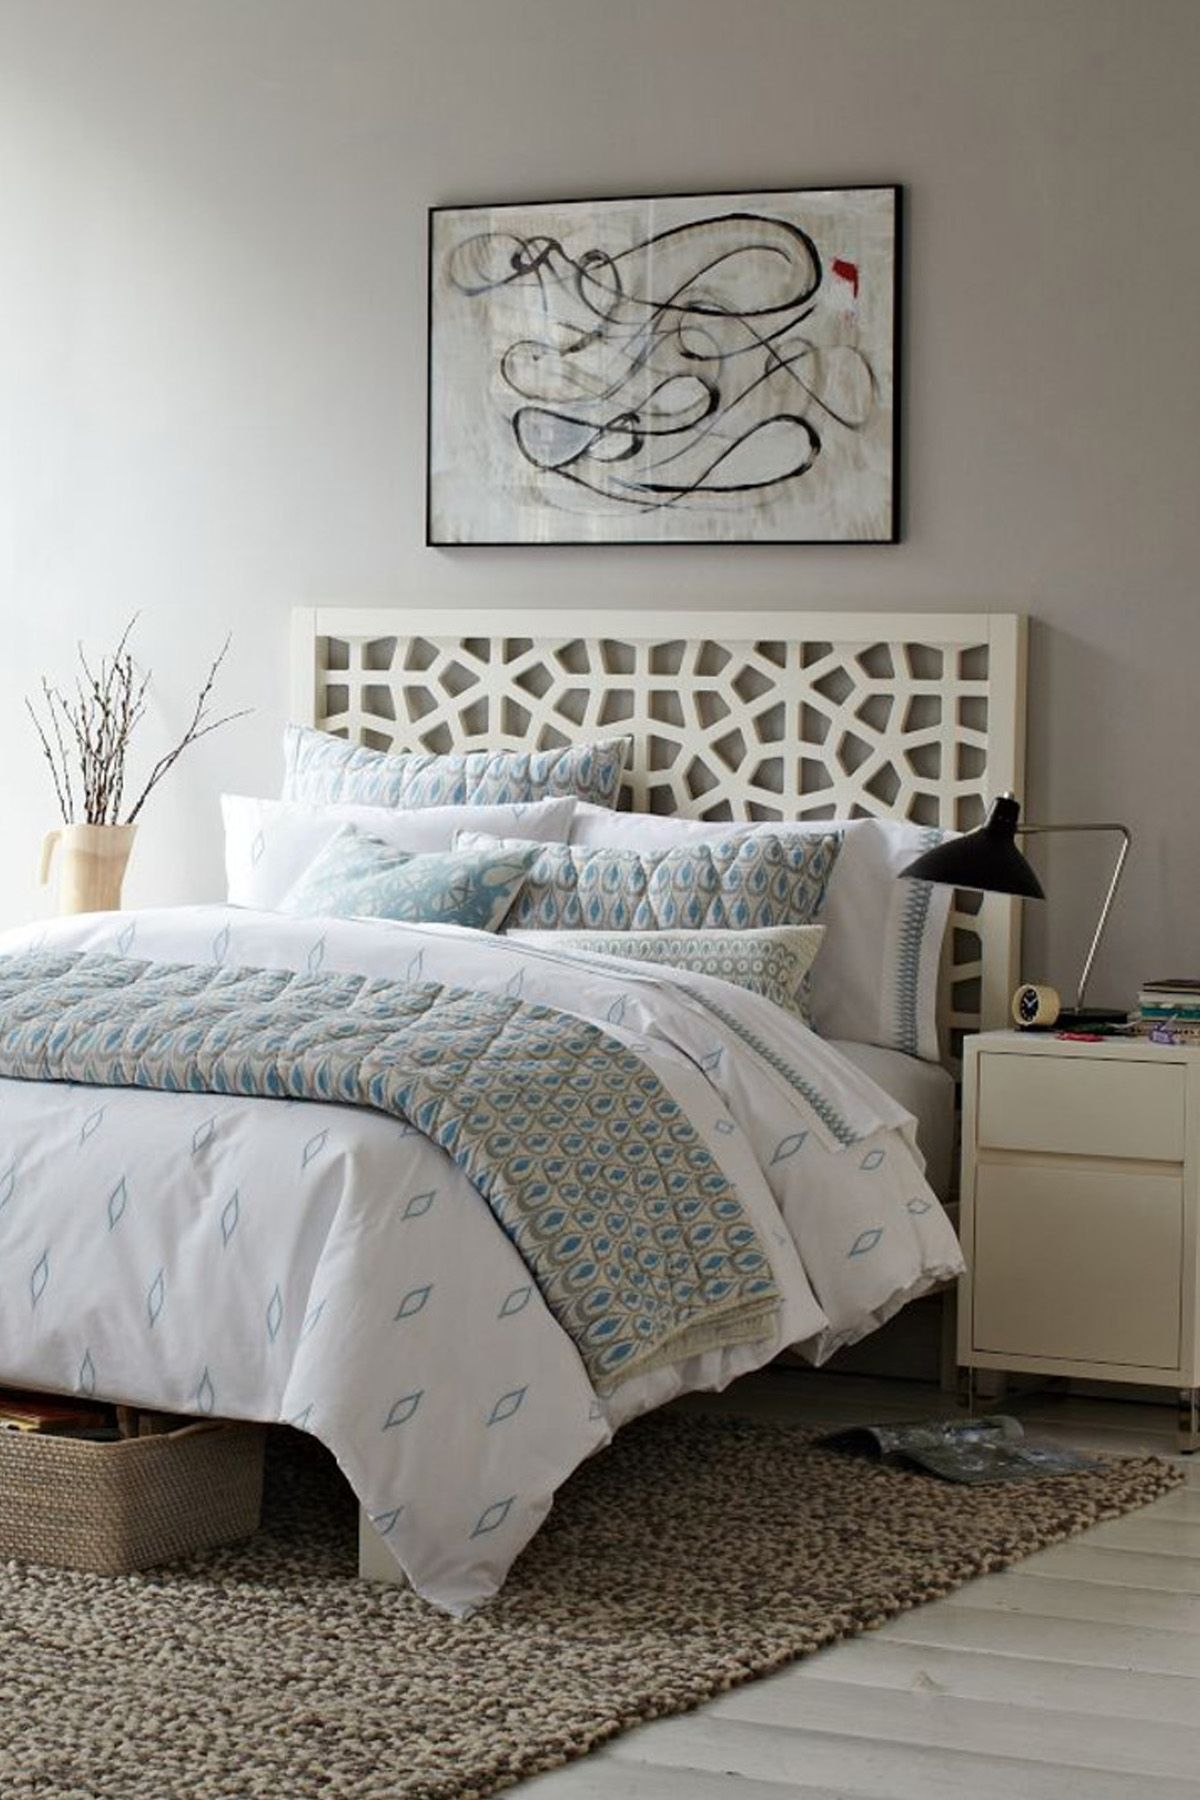 Backboard Ideas headboard ideas